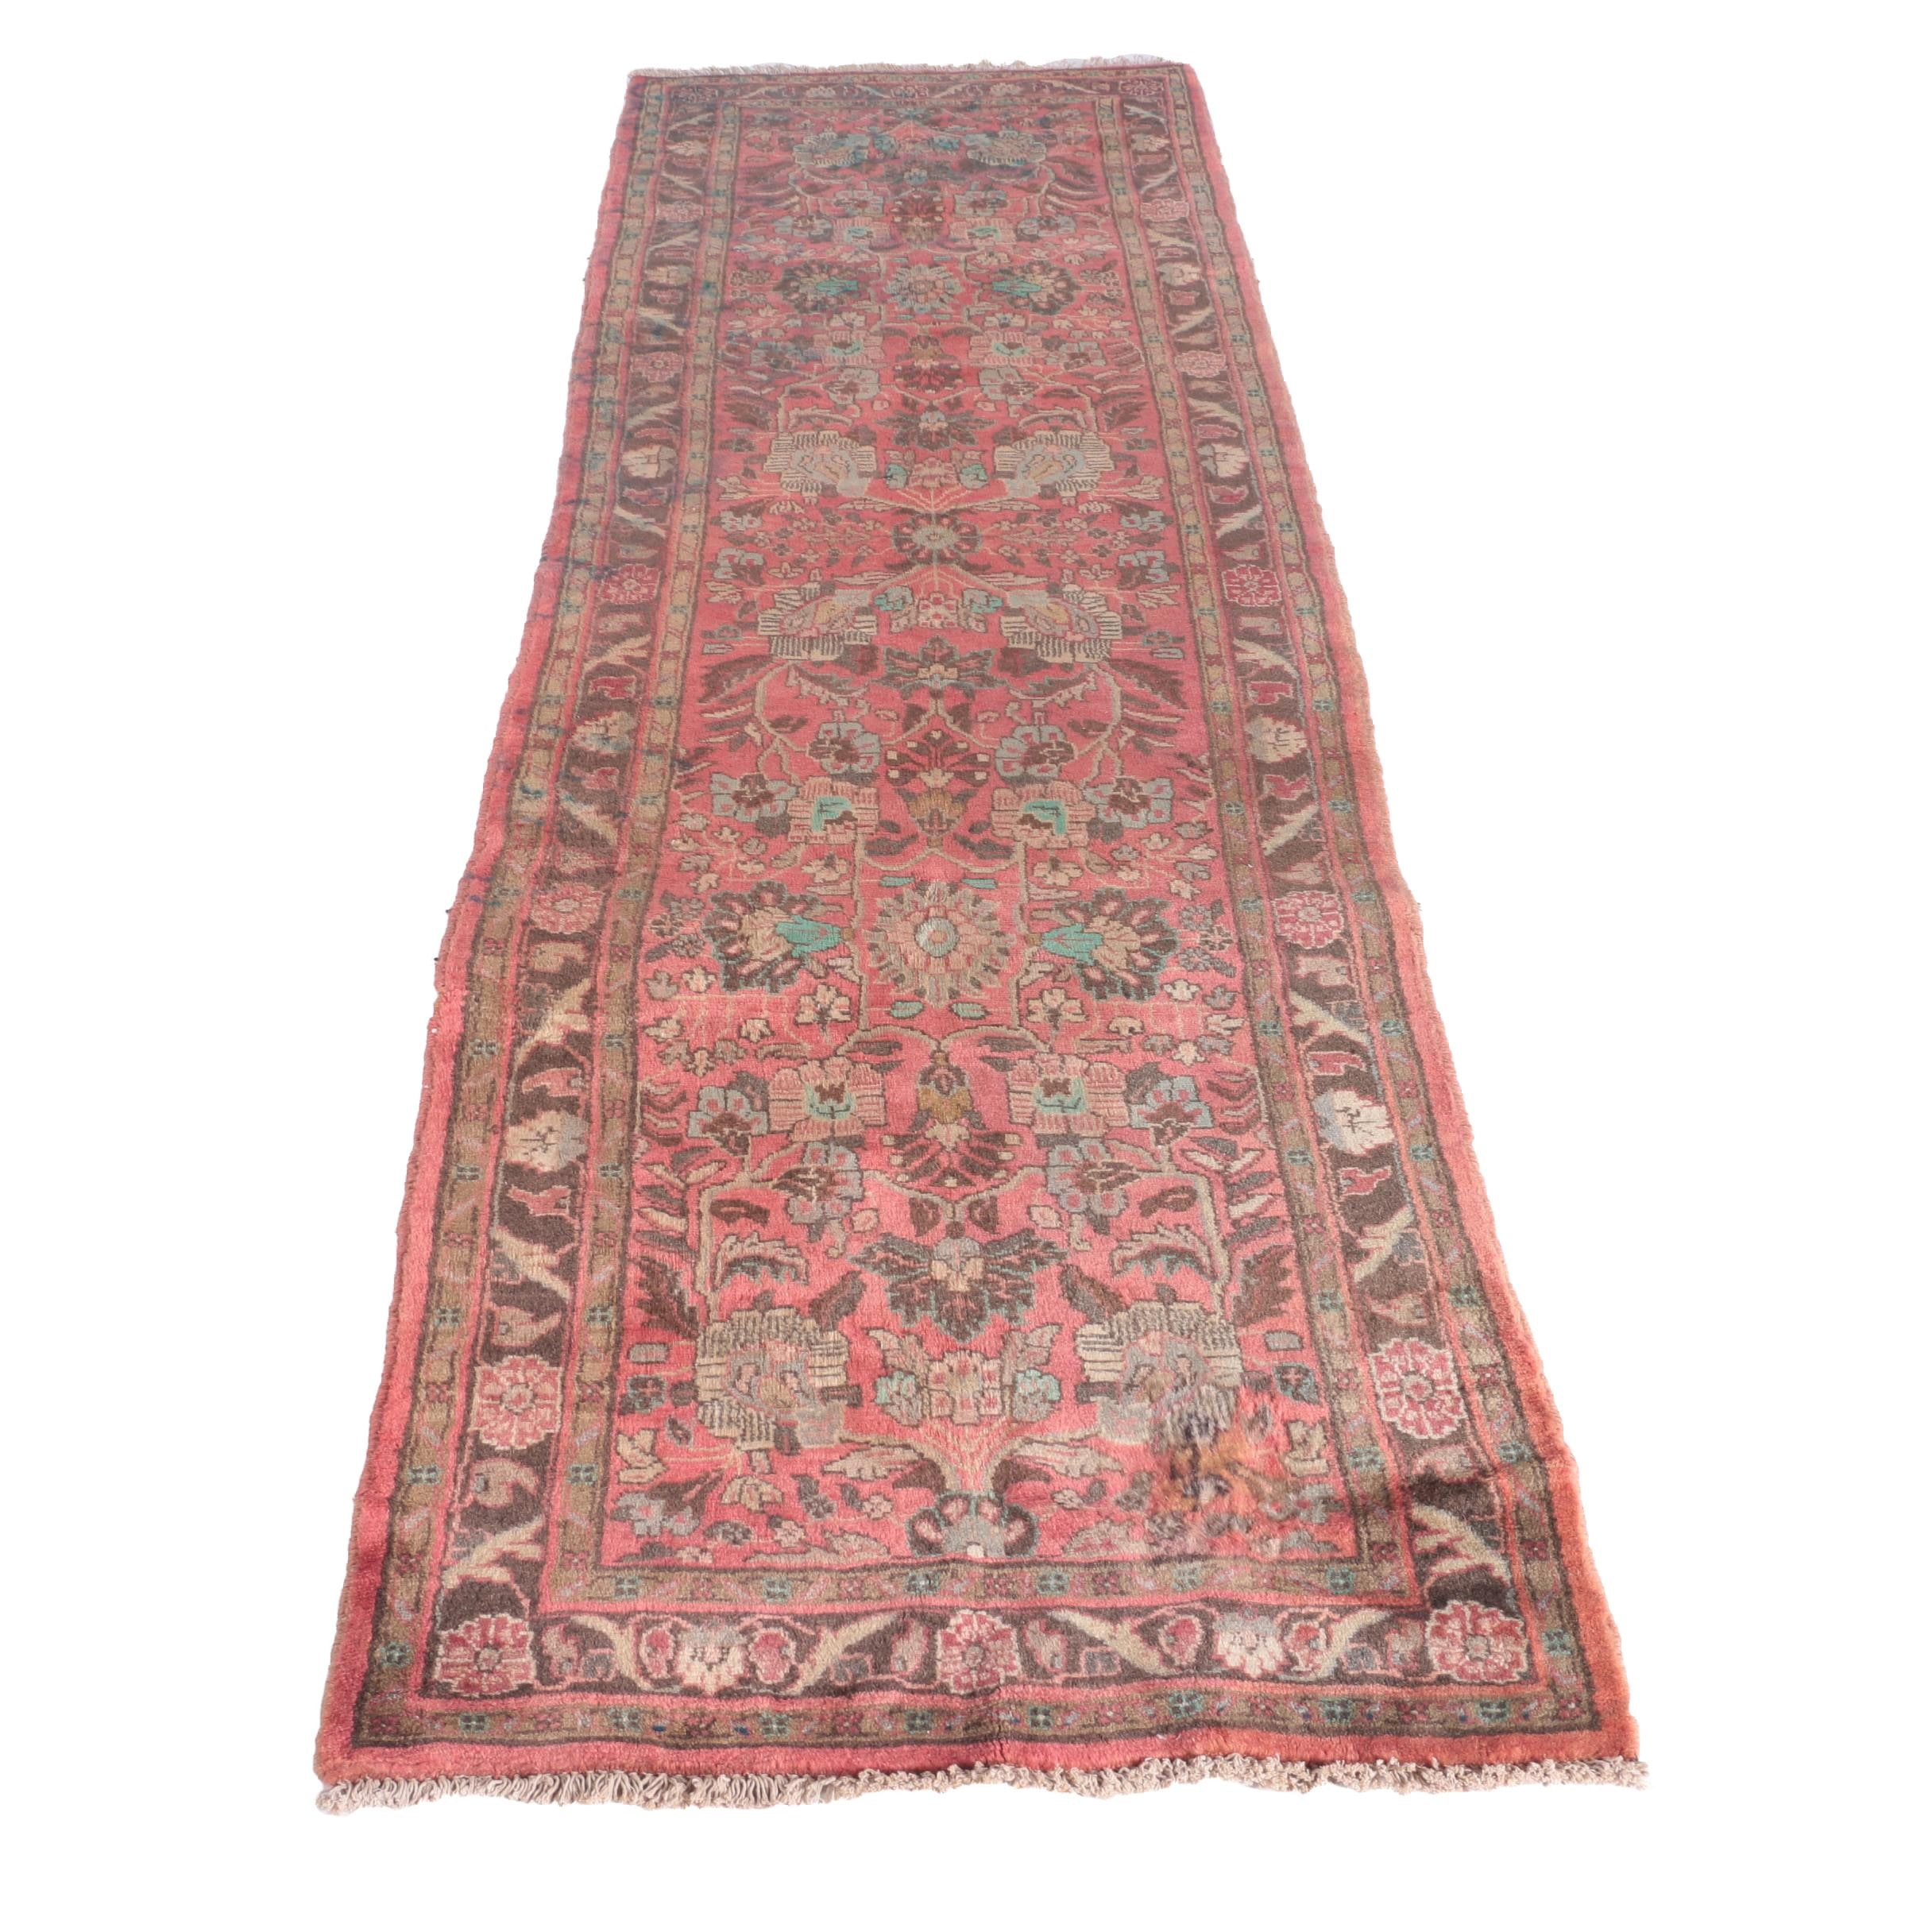 Hand-Knotted Perisan Mehriban Carpet Runner